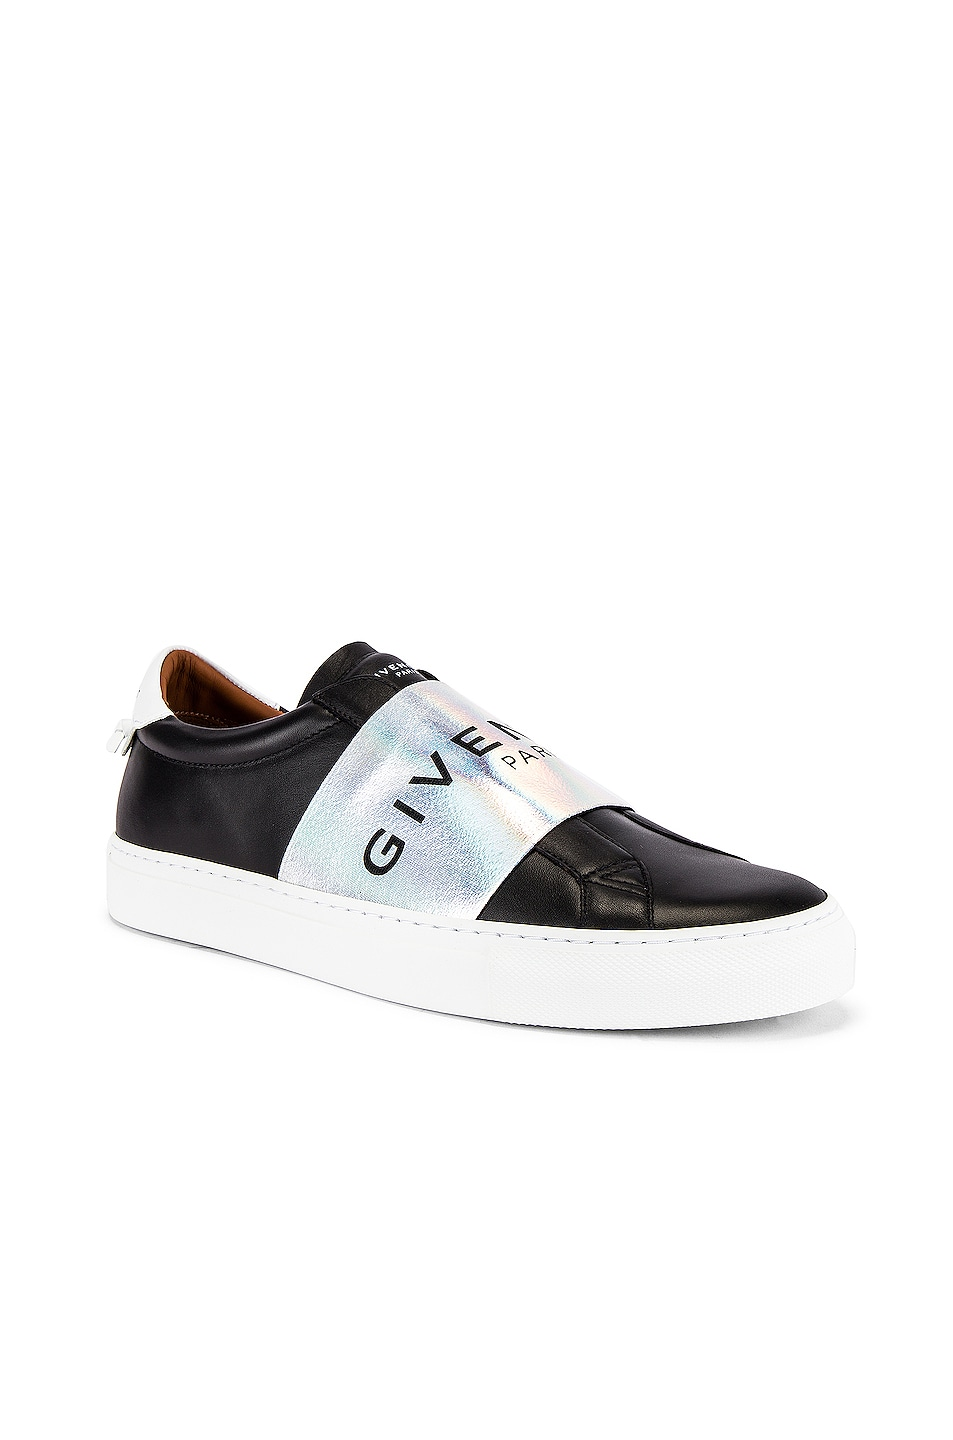 Image 1 of Givenchy Urban Street Elastic Sneakers in Black & White